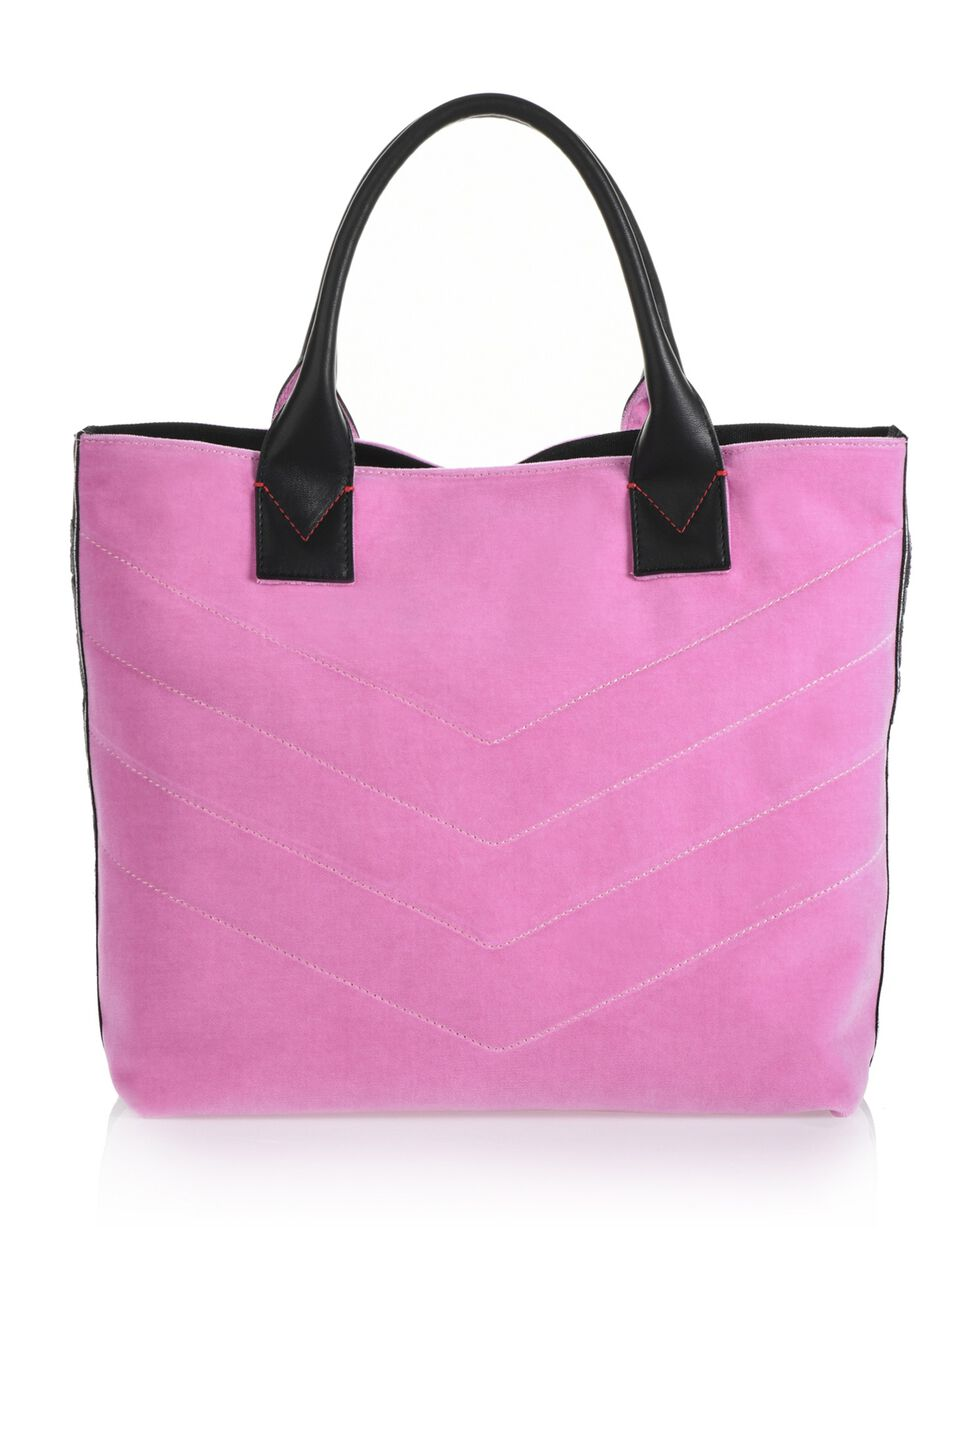 Sac Pinko Bag en velours